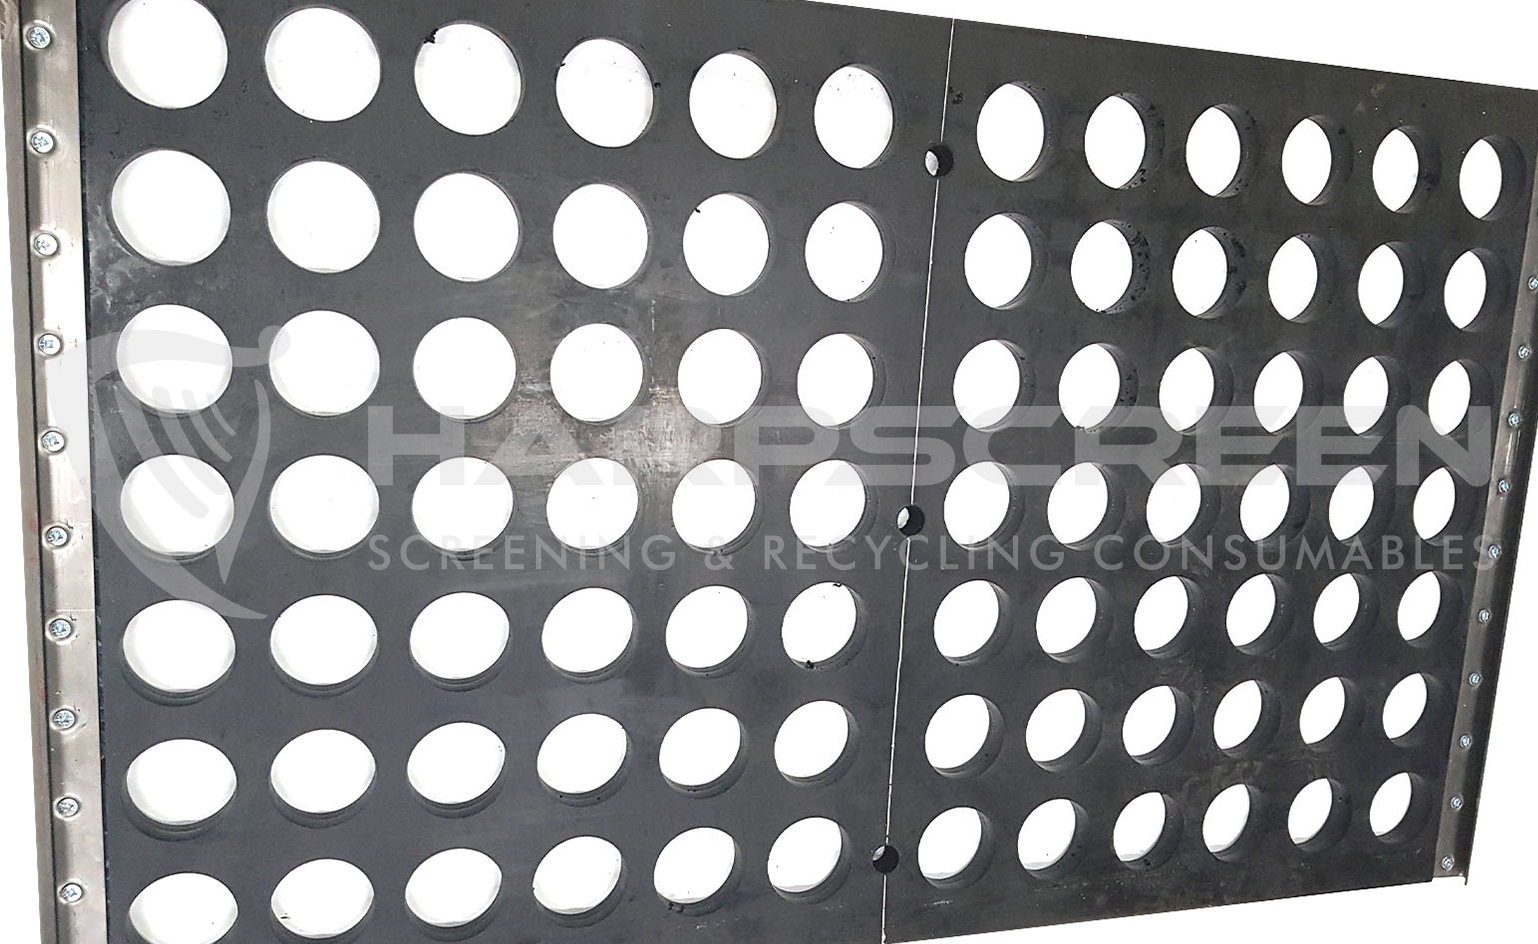 Mats Rubber Screens